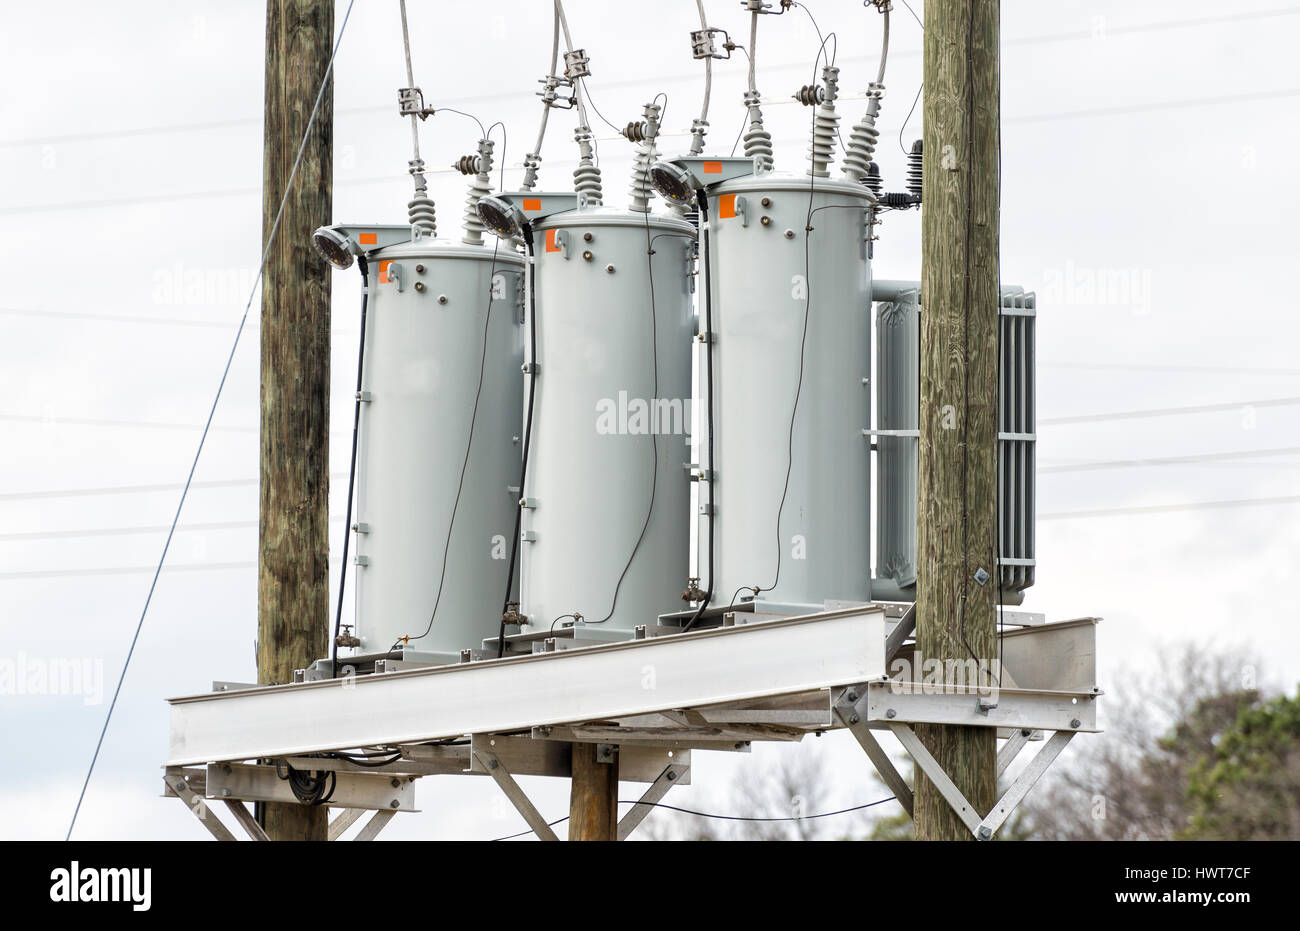 Three Electric Utility Transformers On Telephone Poles - Stock Image